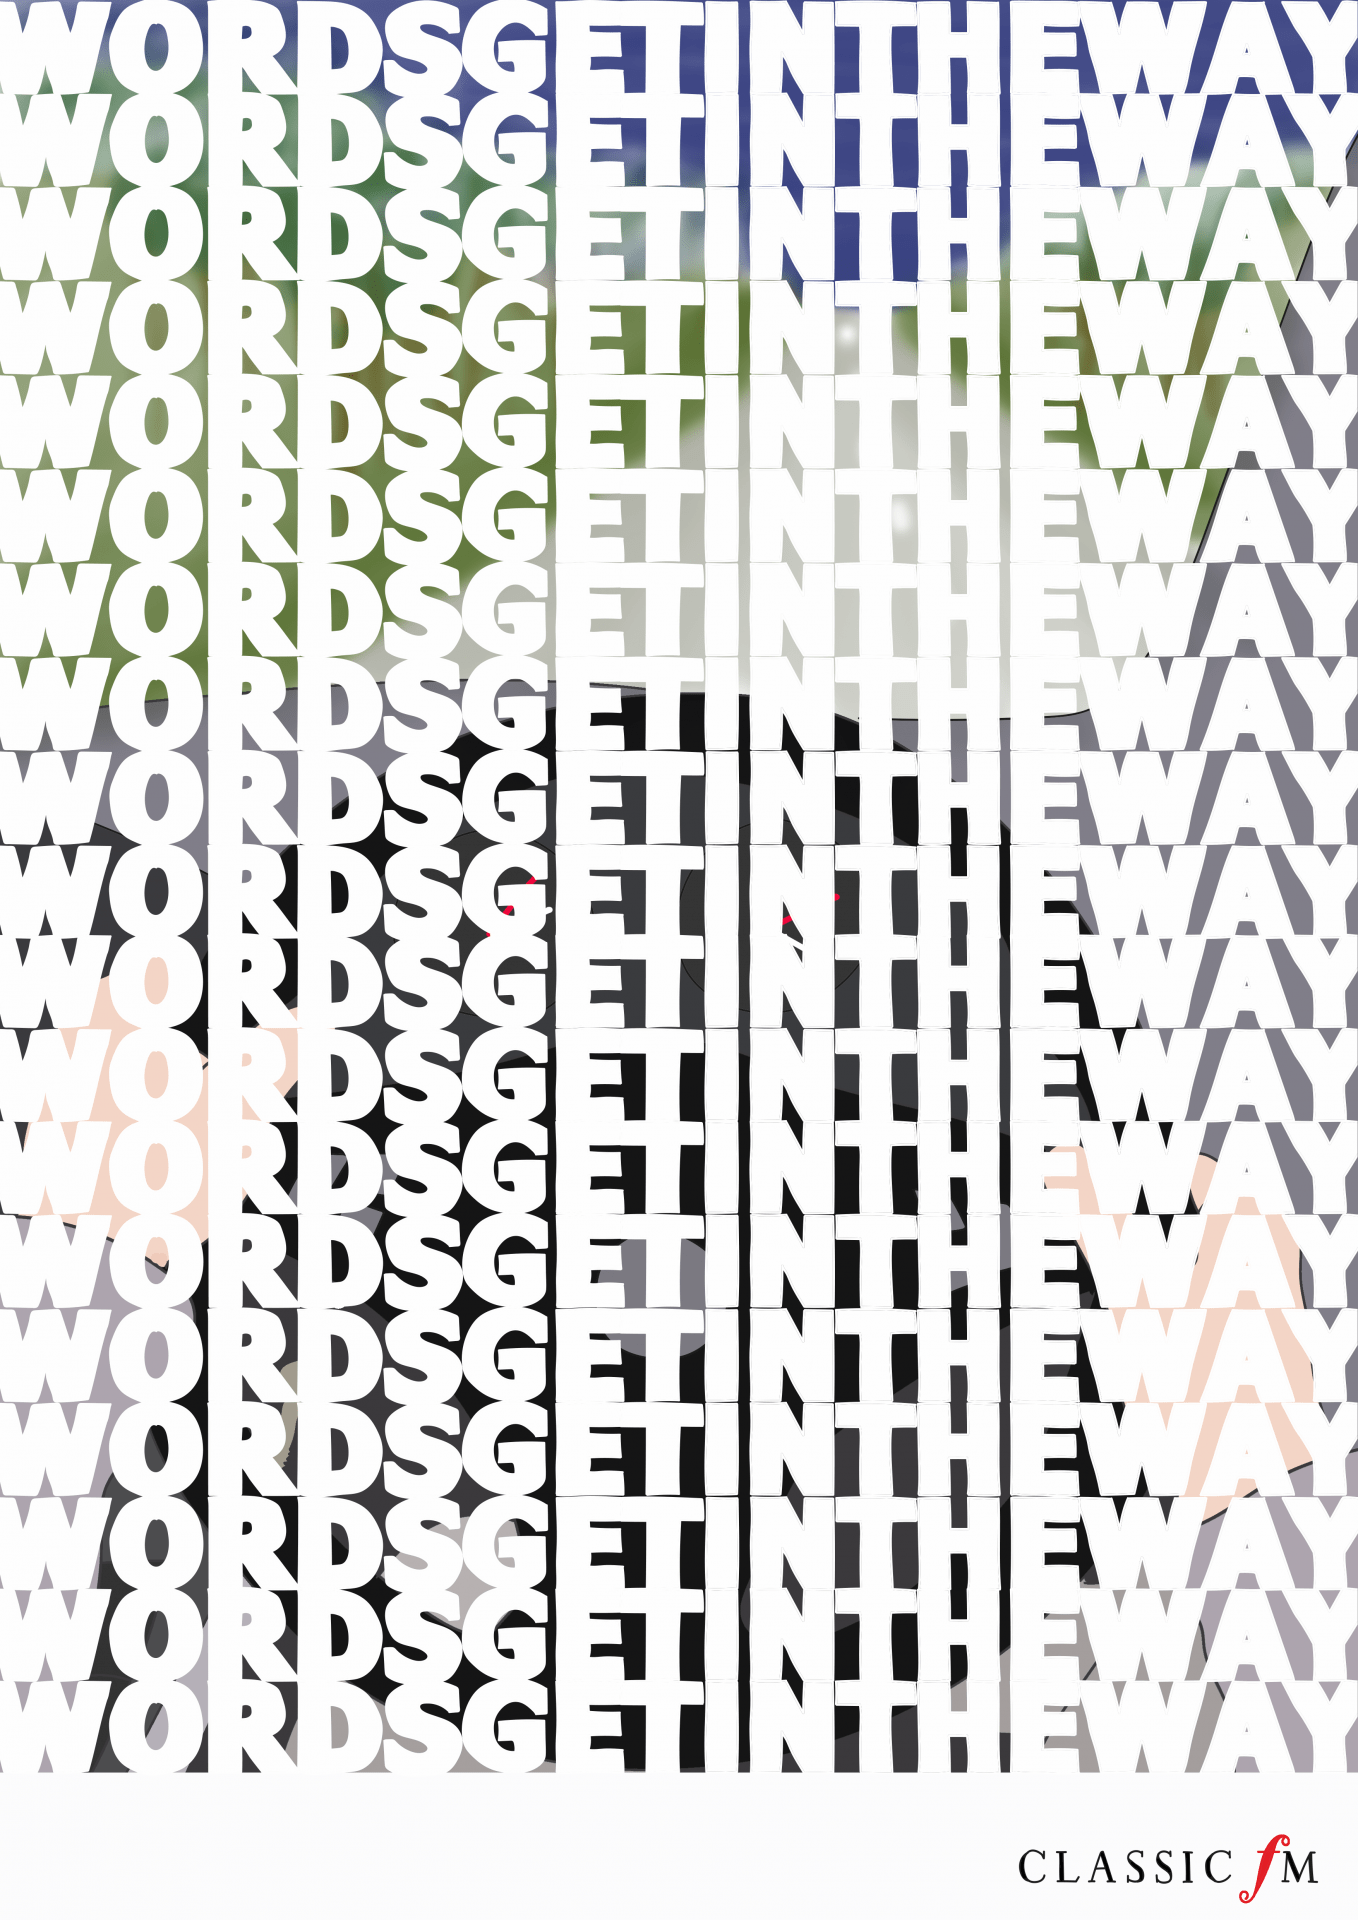 6 Sheet Illustration of the caption 'Words get in the way' covering a background image.